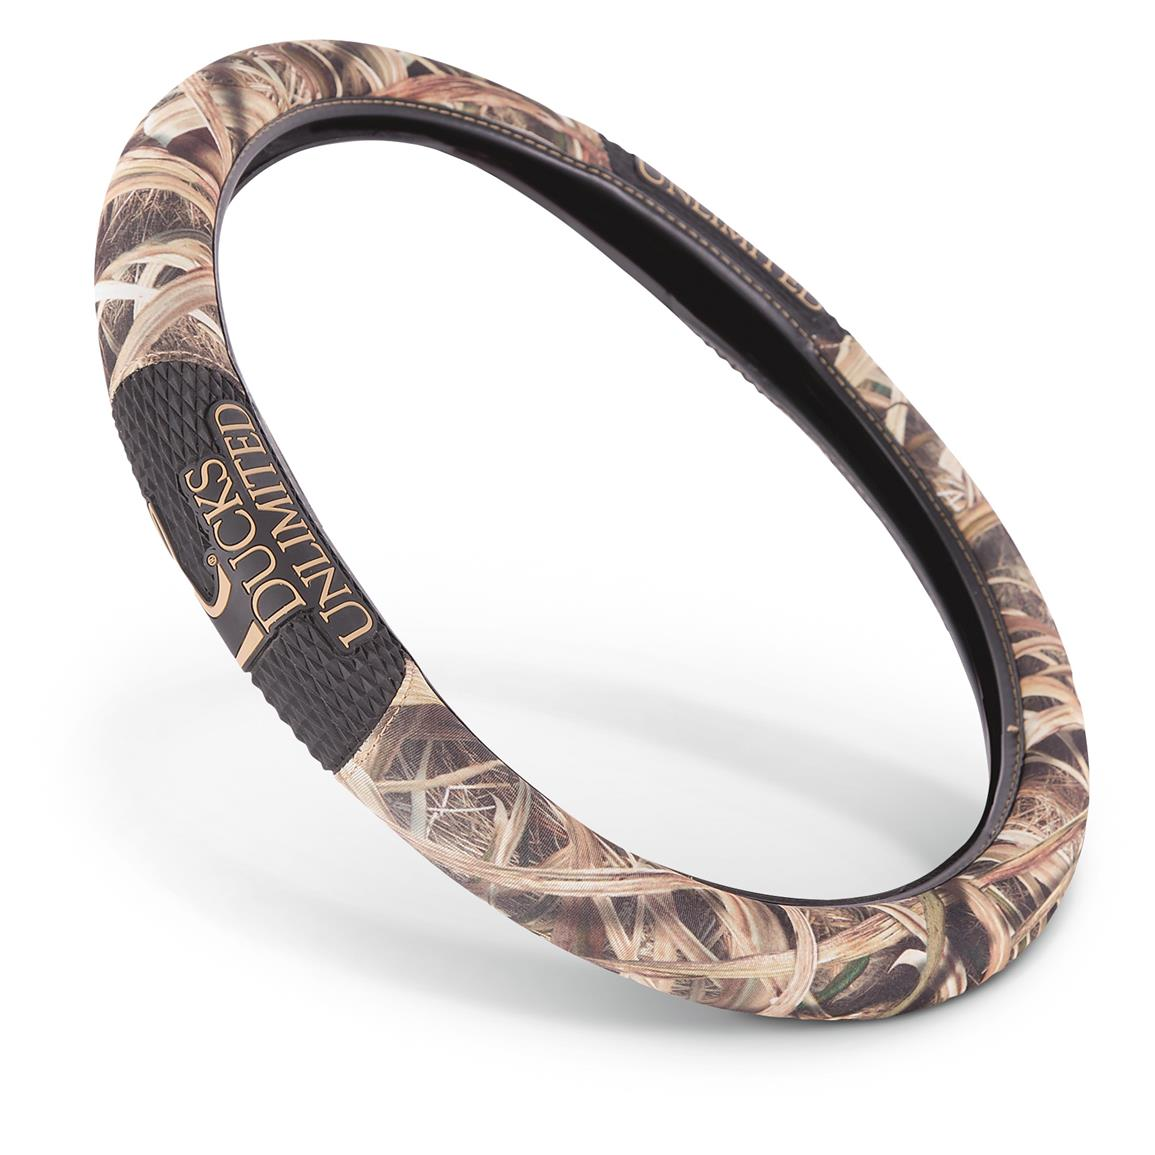 2-grip Universal Camo Steering Wheel Cover, Ducks Unlimited